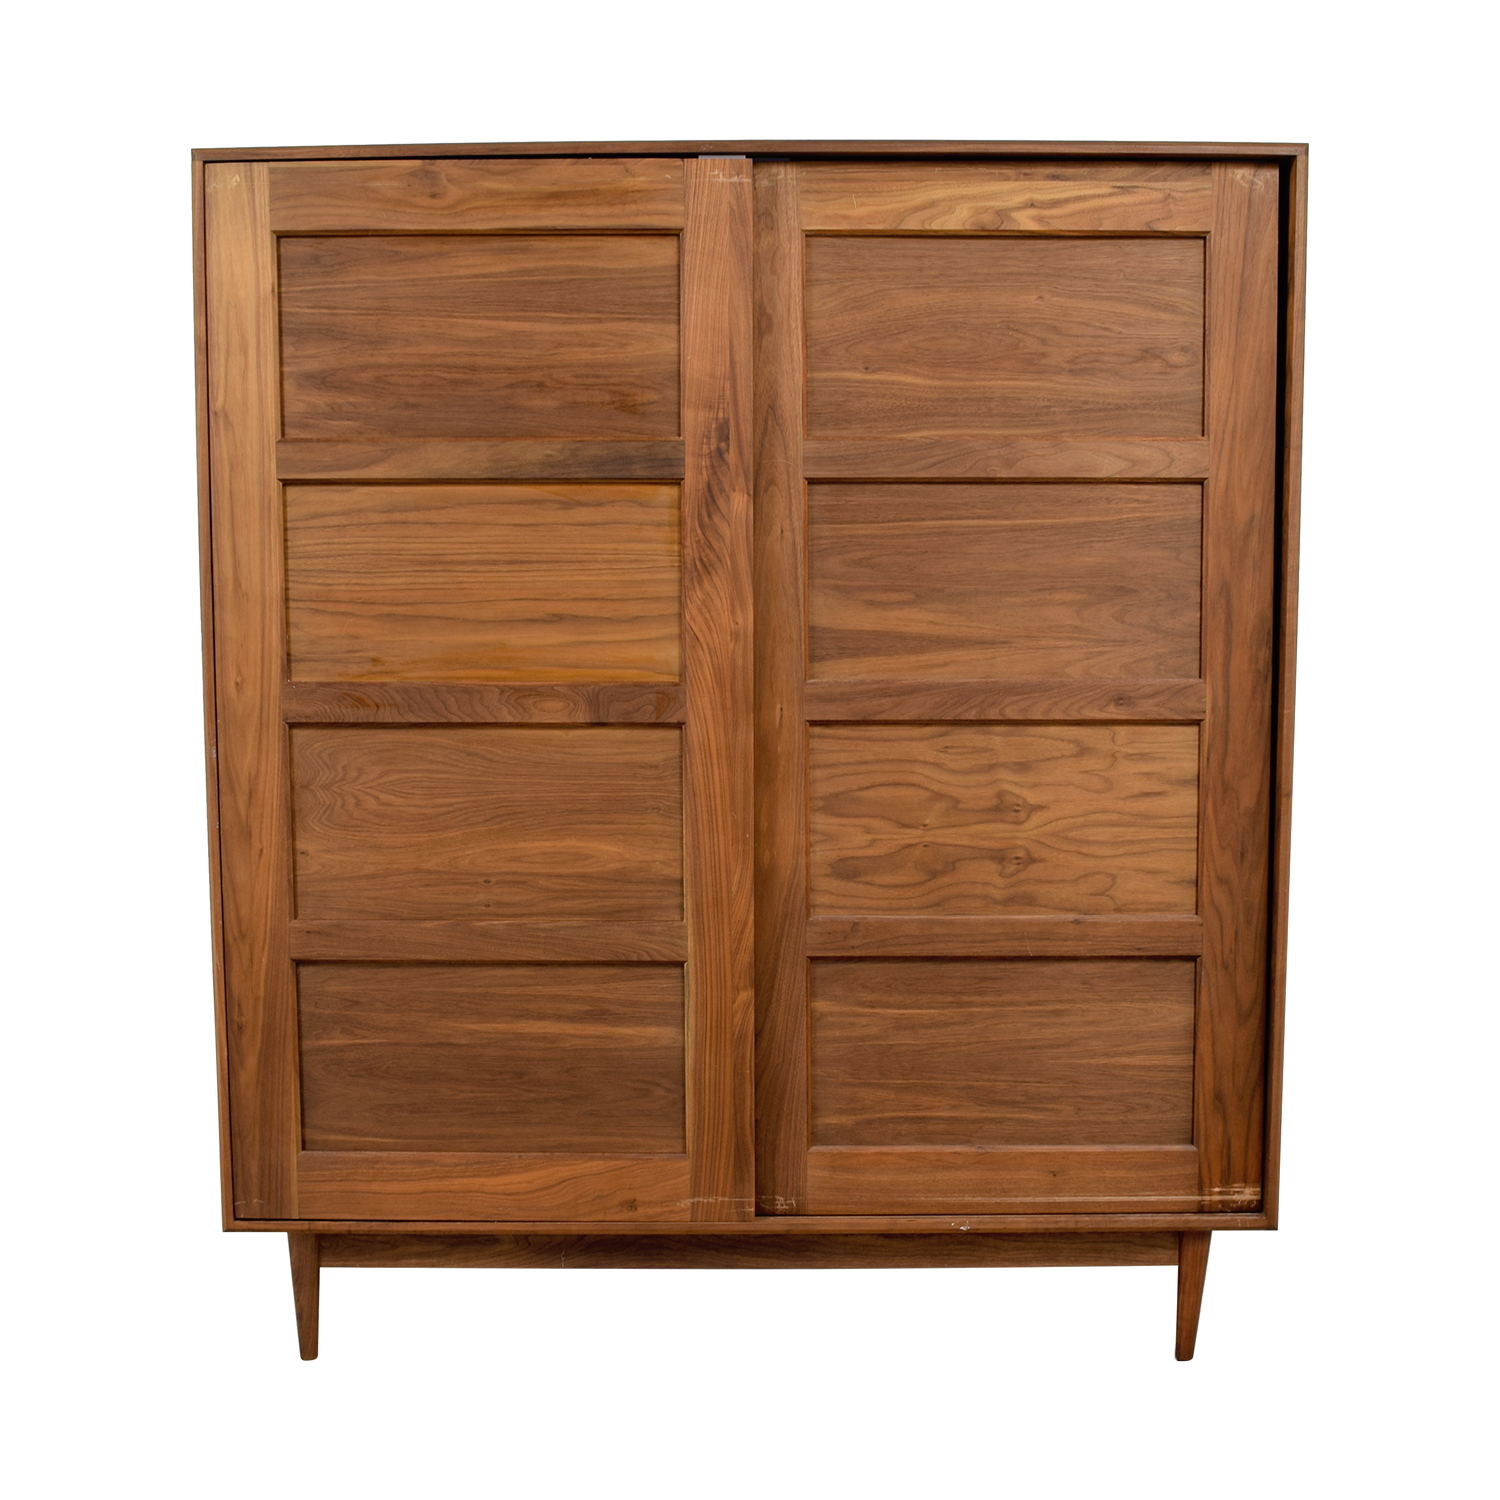 shop Room & Board Room & Board Wood Clothing Armoire online